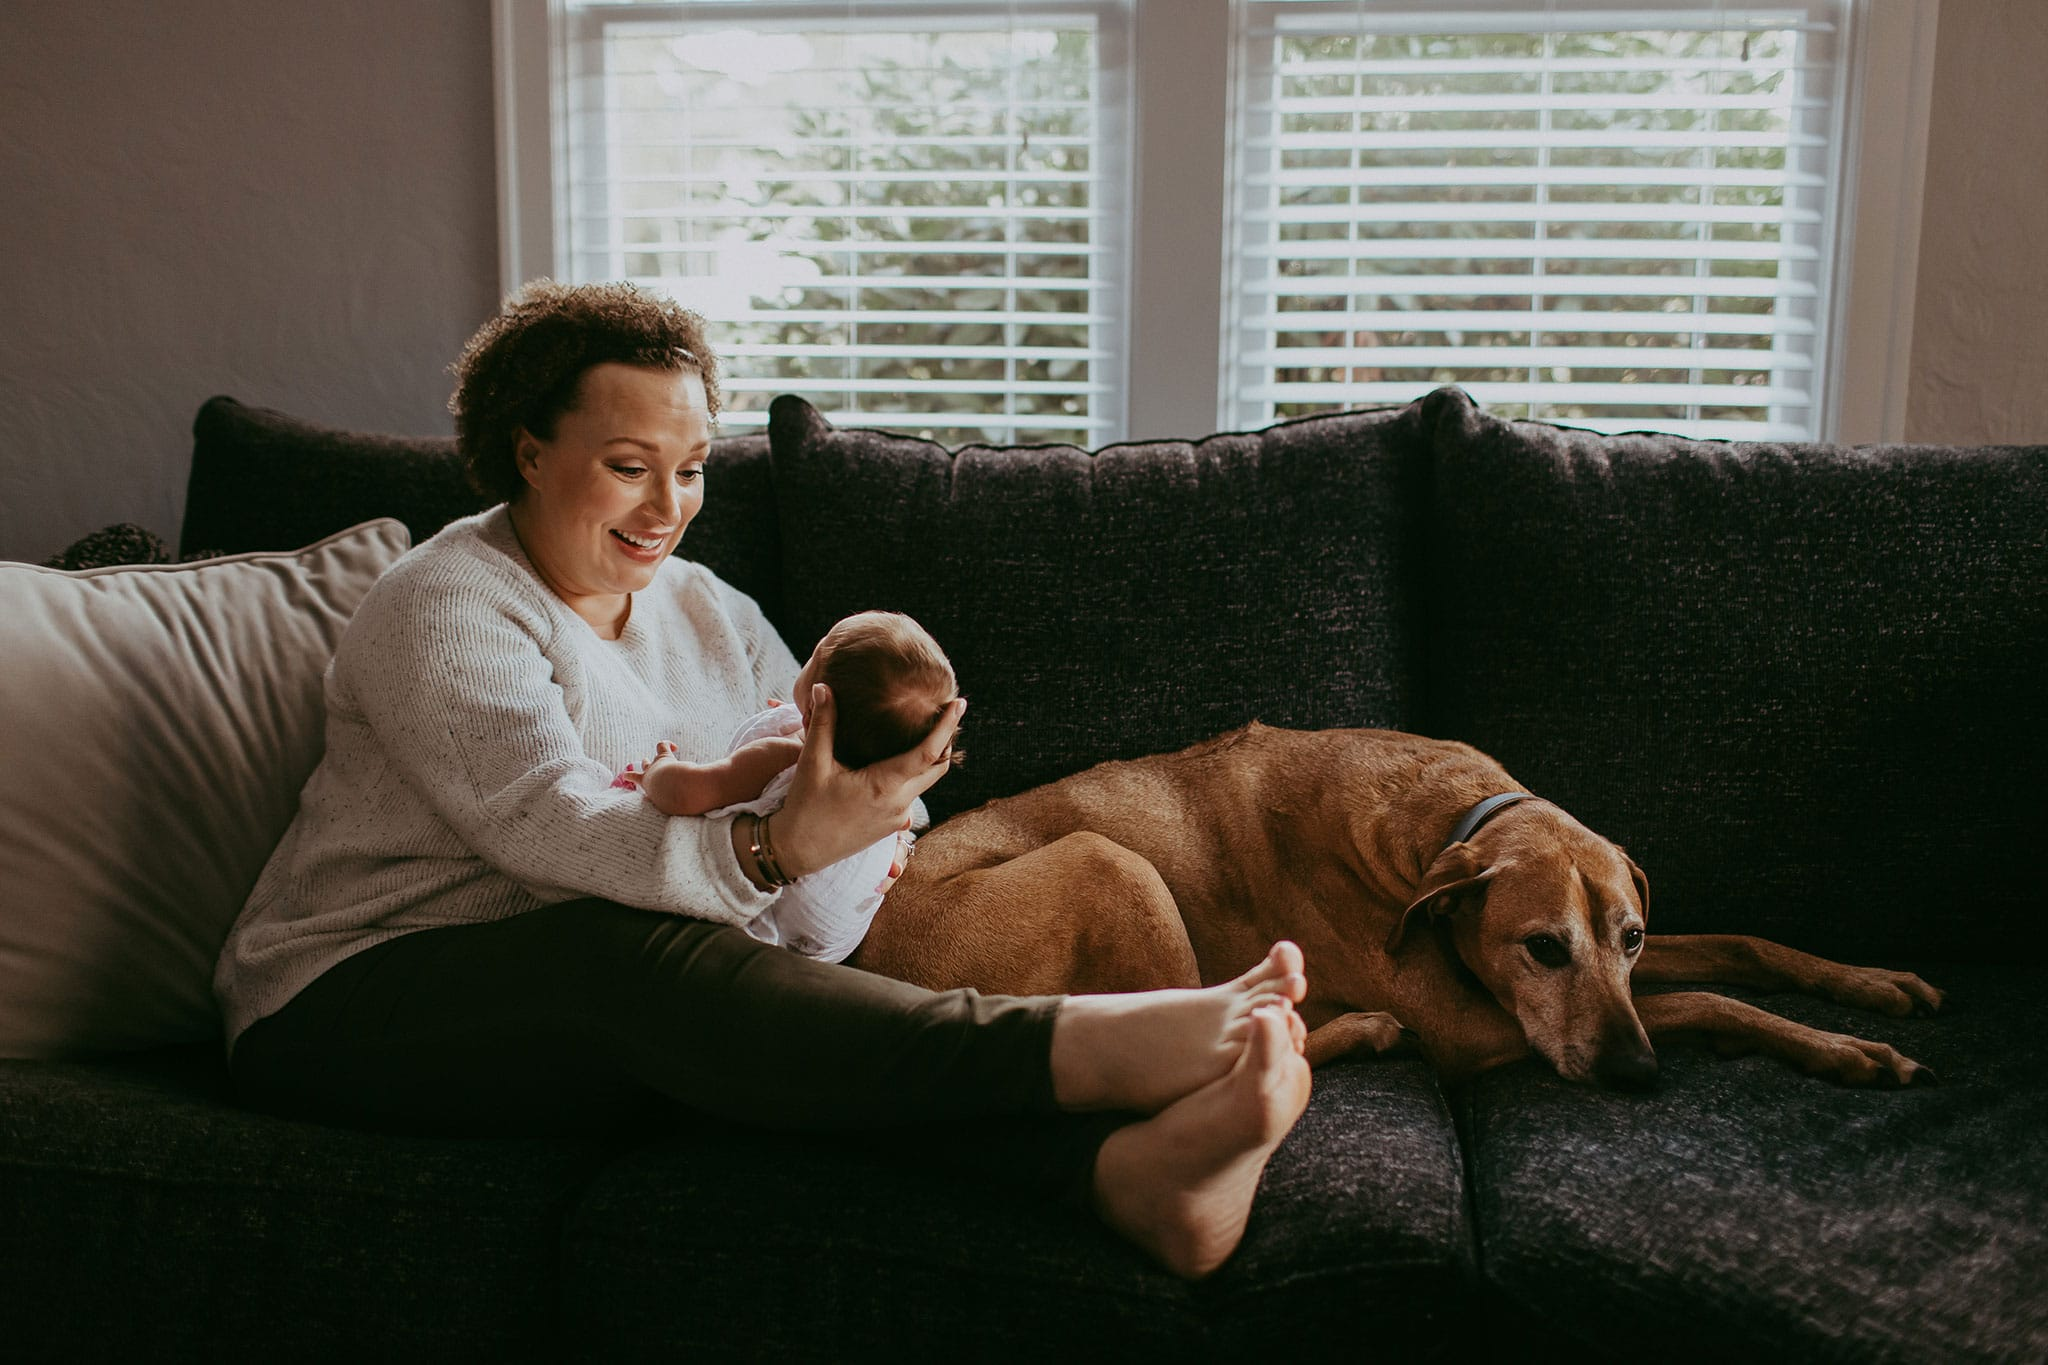 new mom, baby, and dog on couch